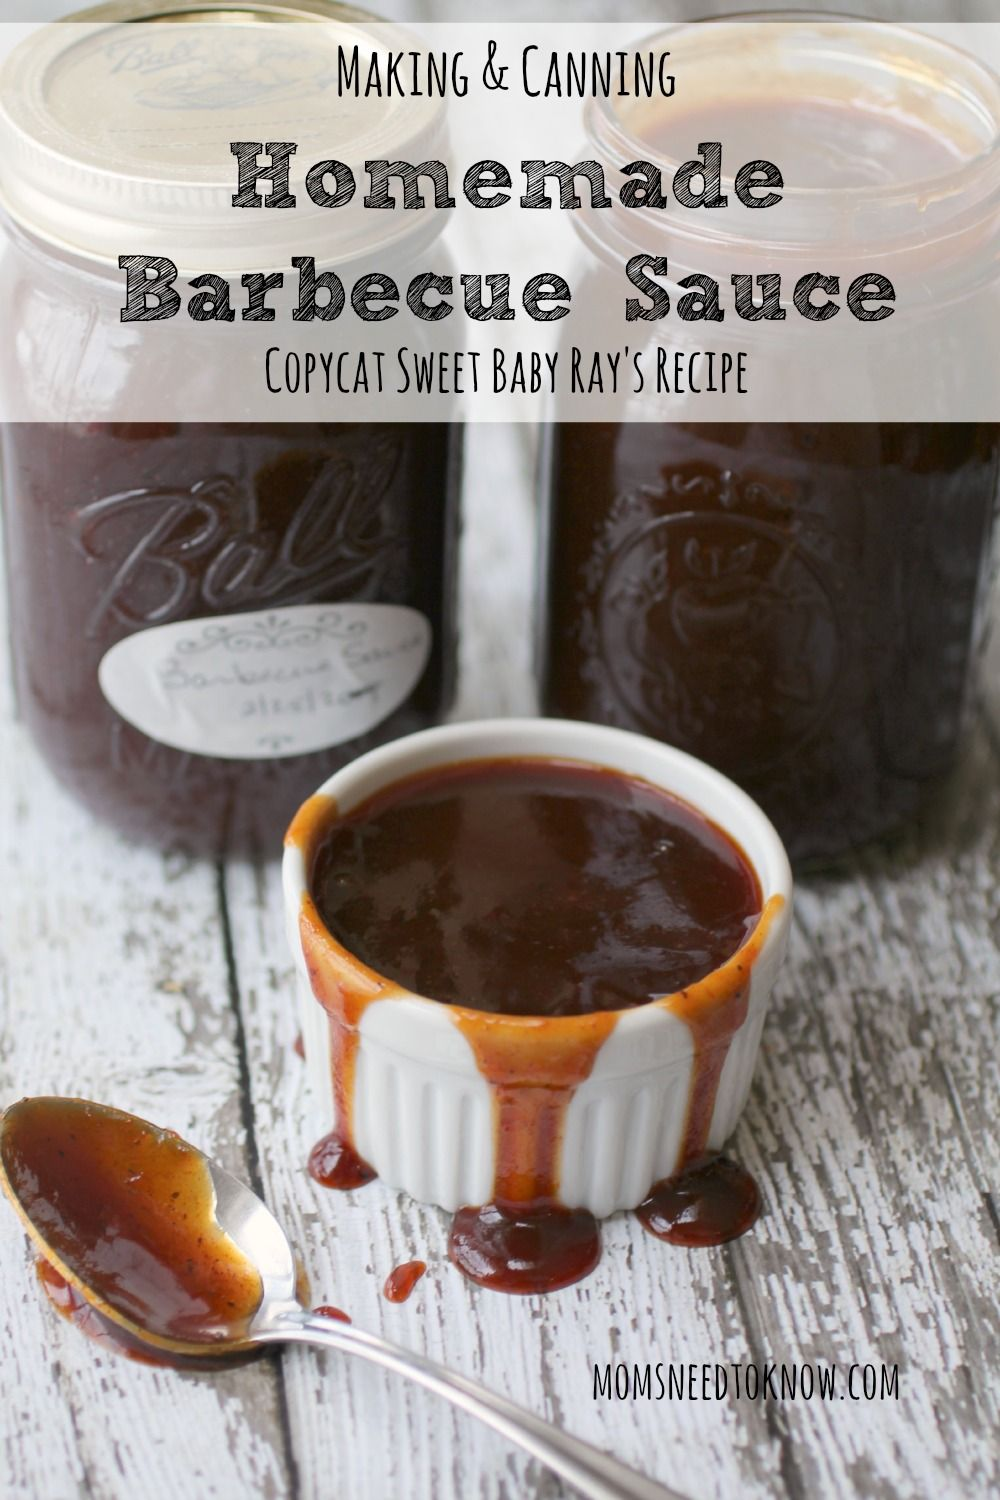 Where can I find Lloyd's BBQ sauce?!? | Yahoo Answers